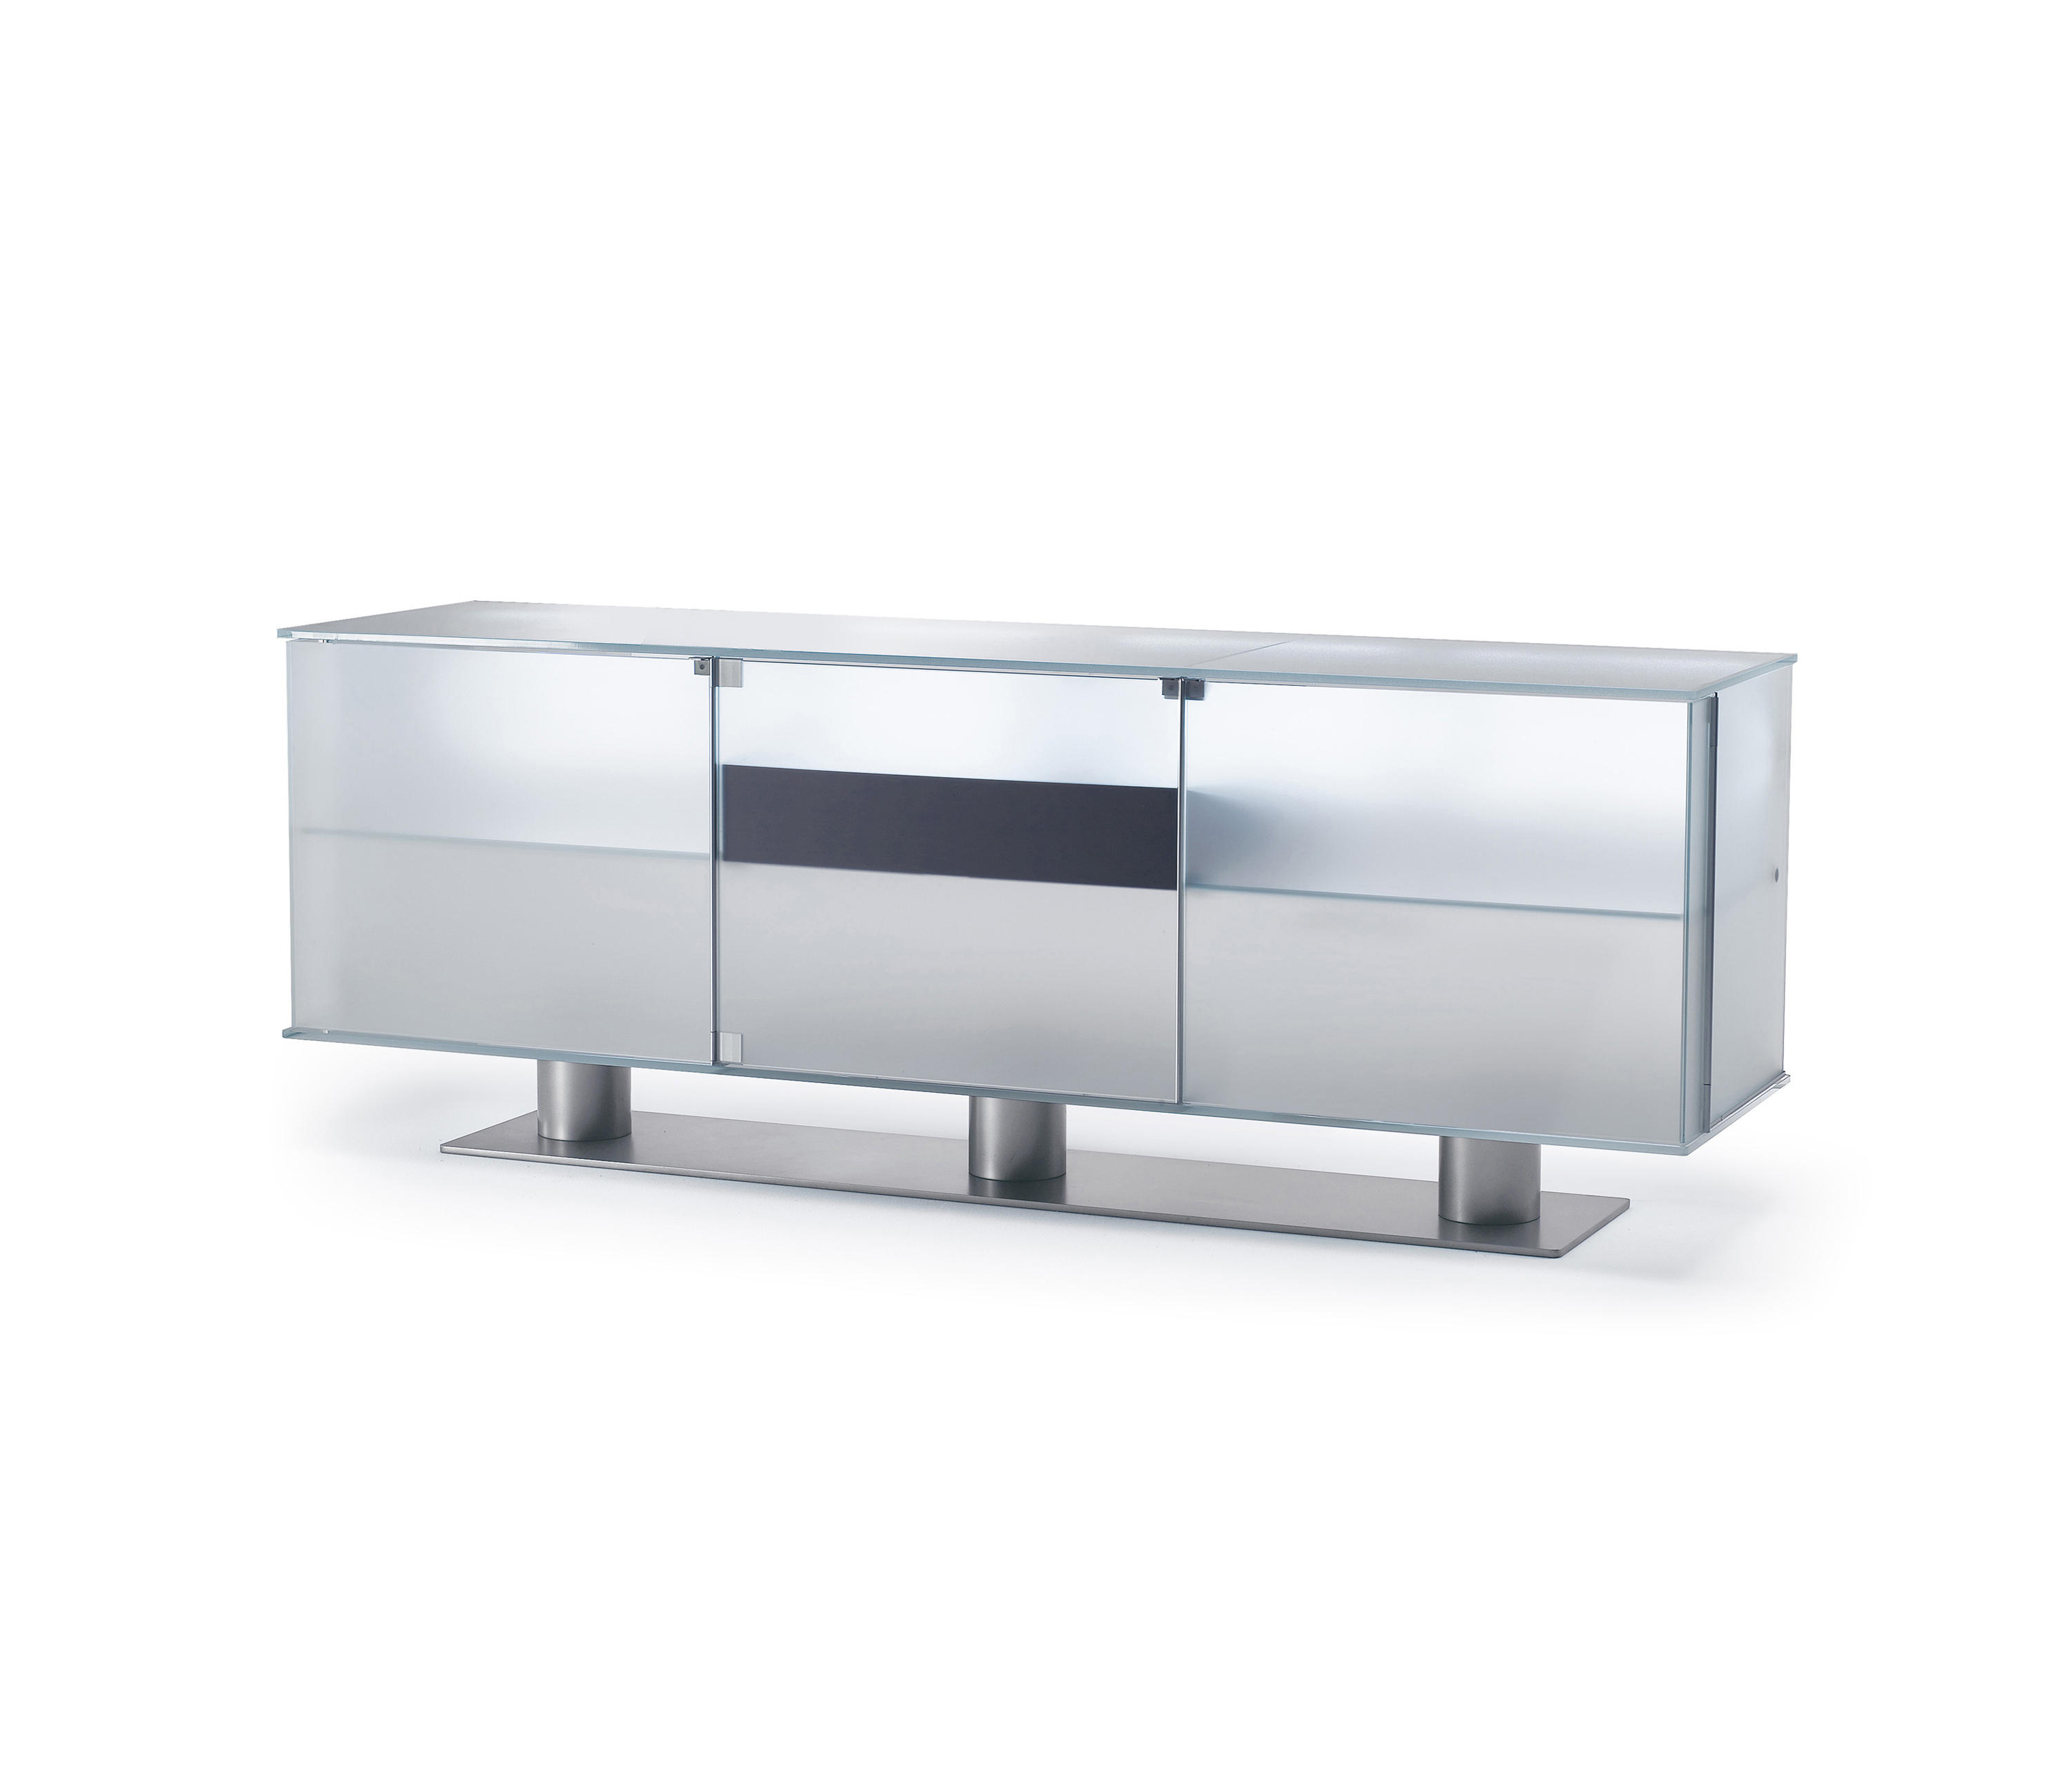 Furniture Research And Select Reflex Products Online Architonic # Muebles Di Giano